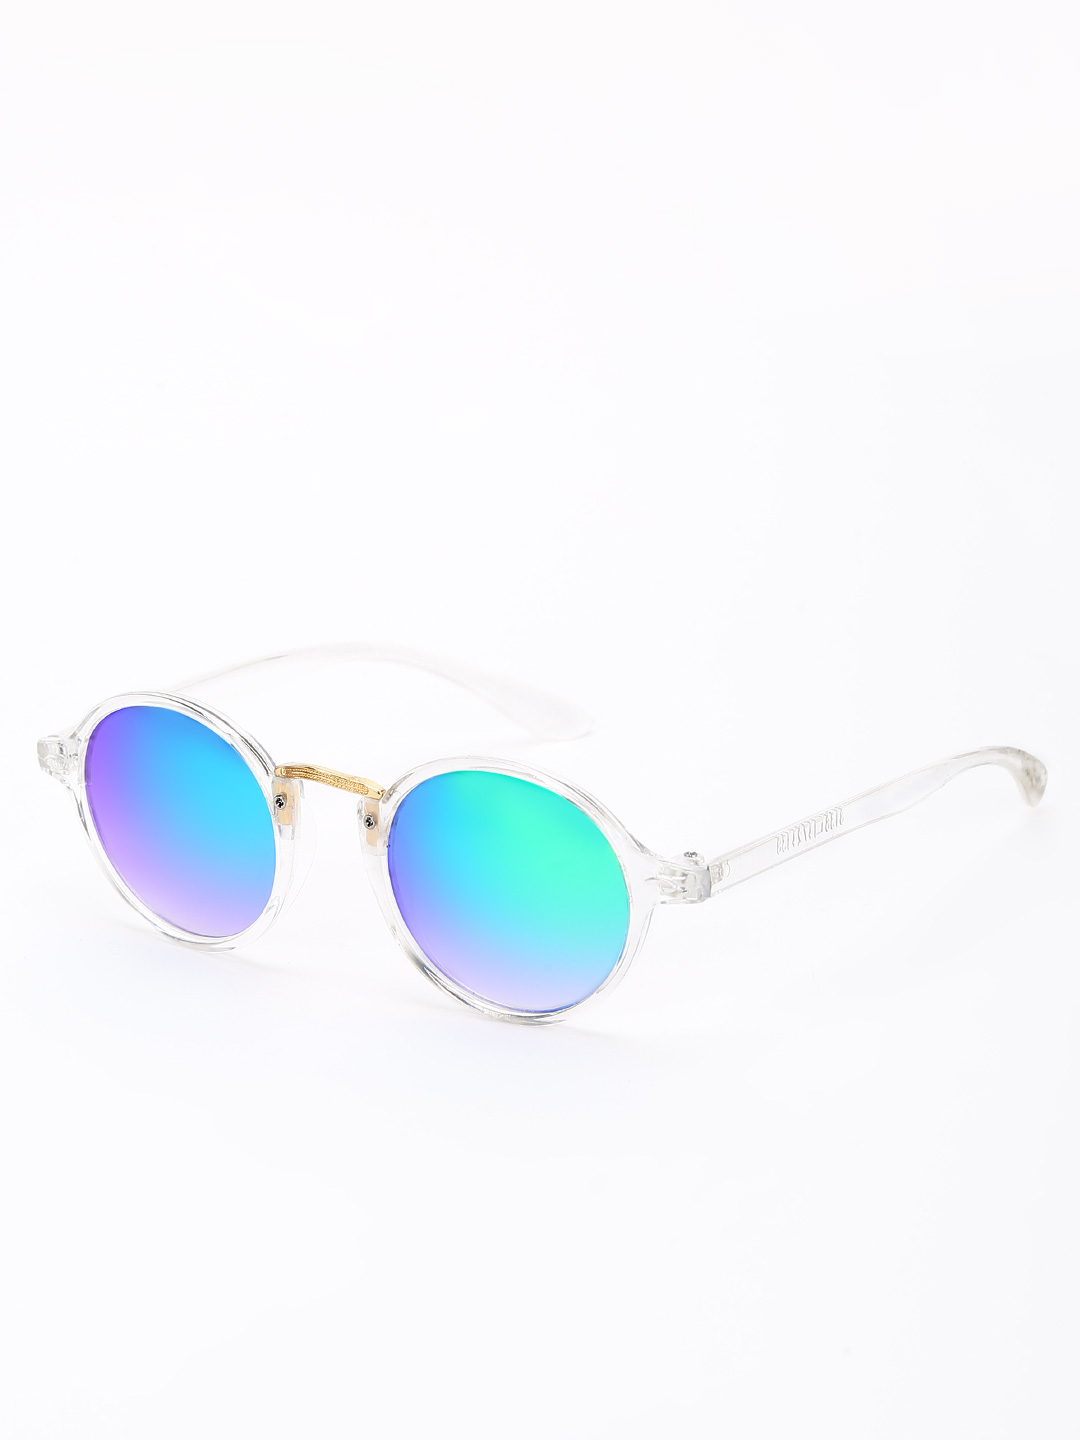 KOOVS Green Reflector Lens Round Sunglasses 1